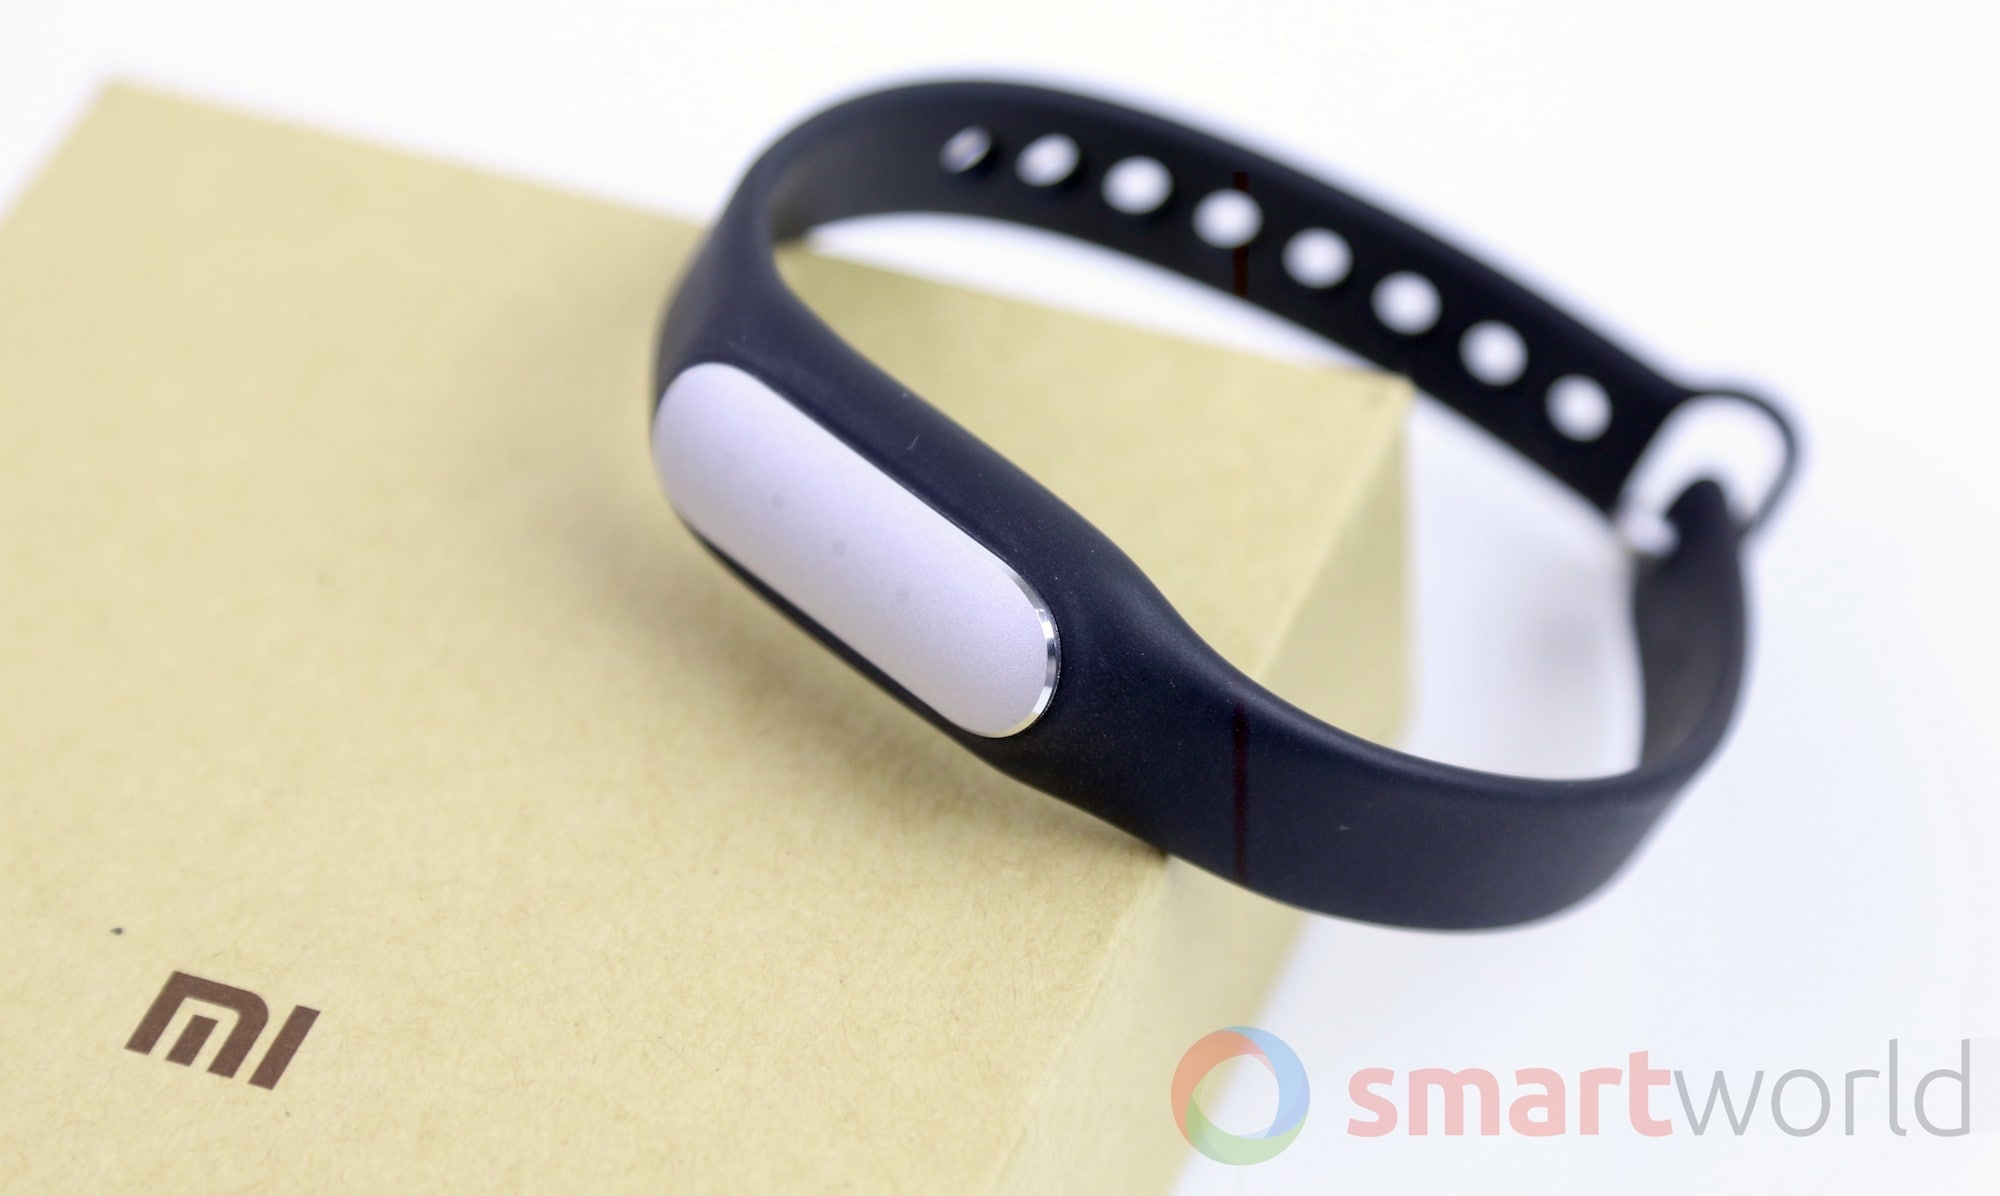 xiaomi mi band 1s la nostra prova foto e video. Black Bedroom Furniture Sets. Home Design Ideas